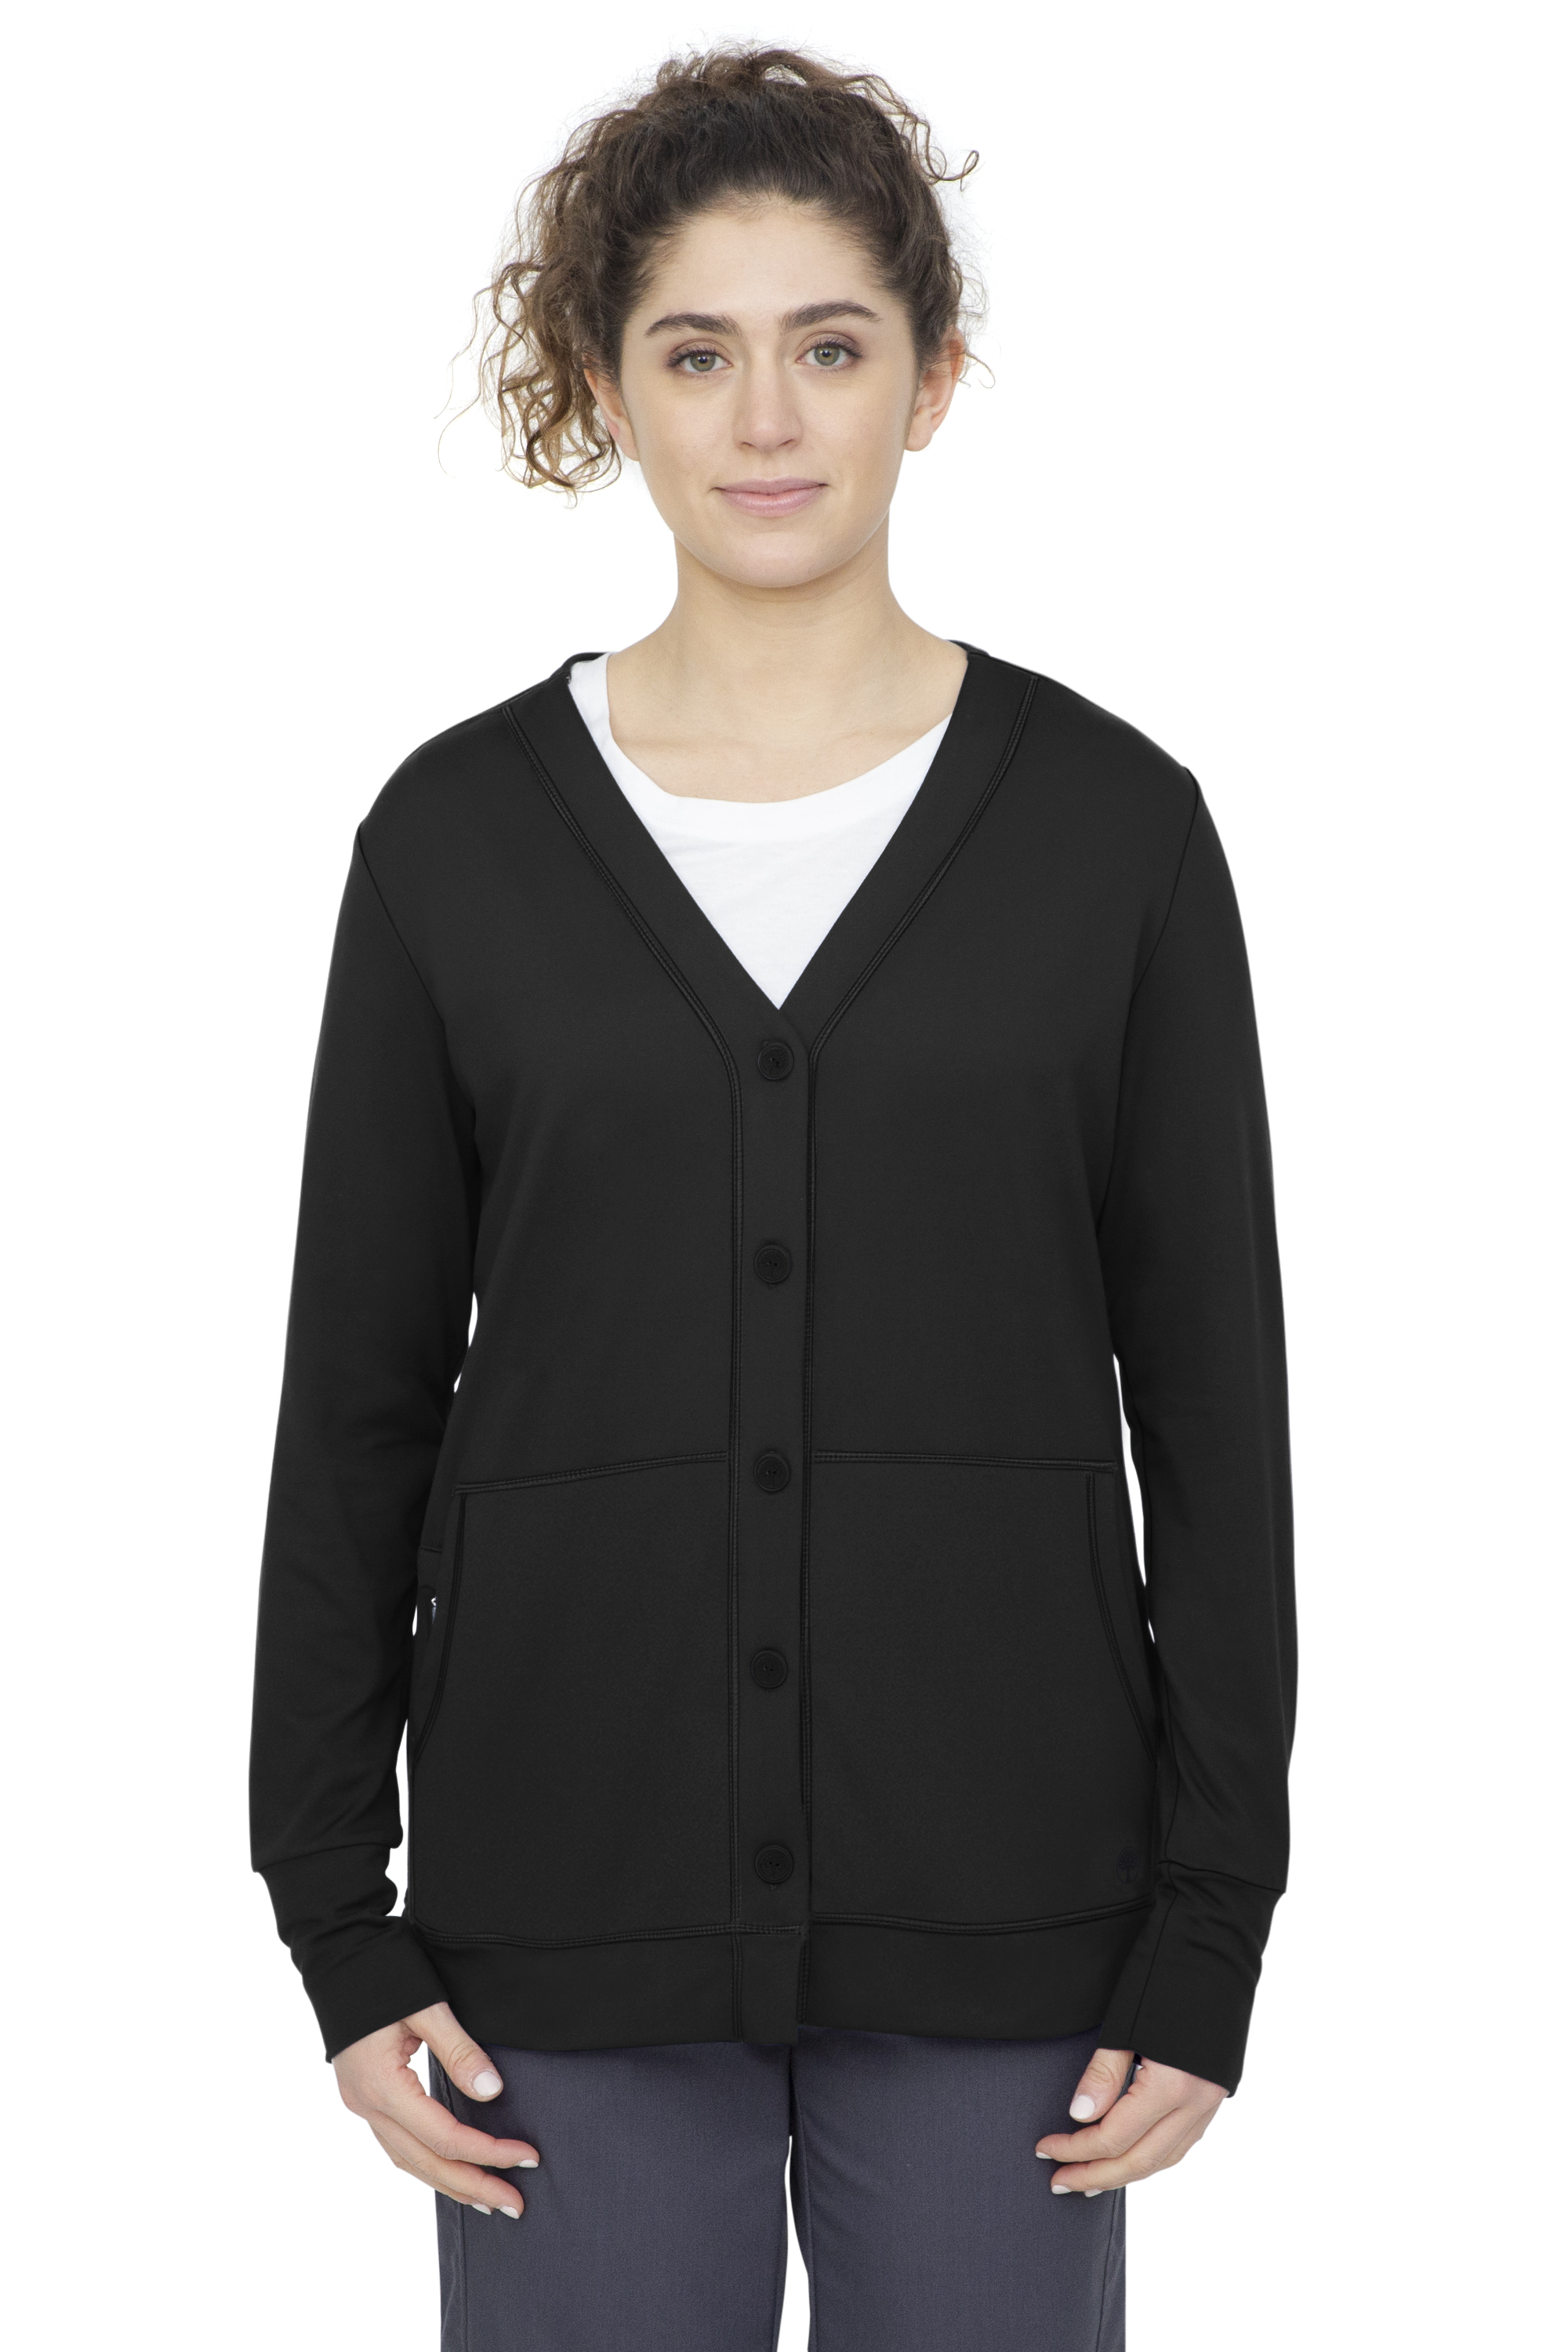 Becca Jacket- Poly/Spandex Knit-Knits